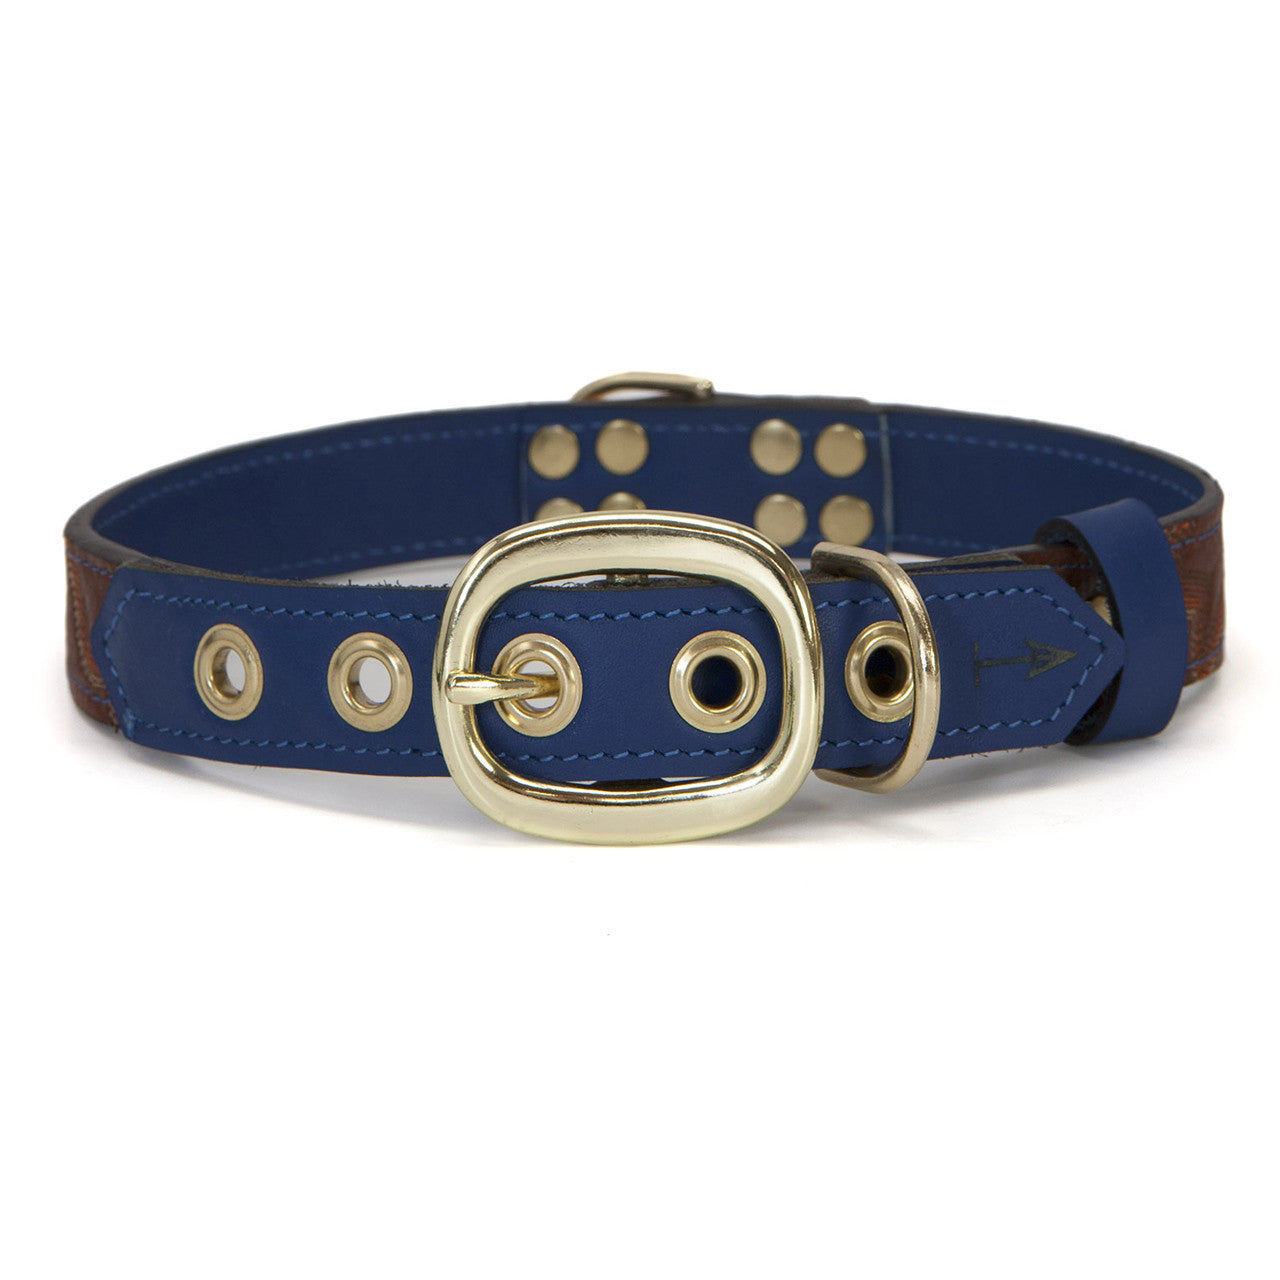 Royal Blue Dog Collar with Brown Leather + Brown/Orange Stitching (back view)